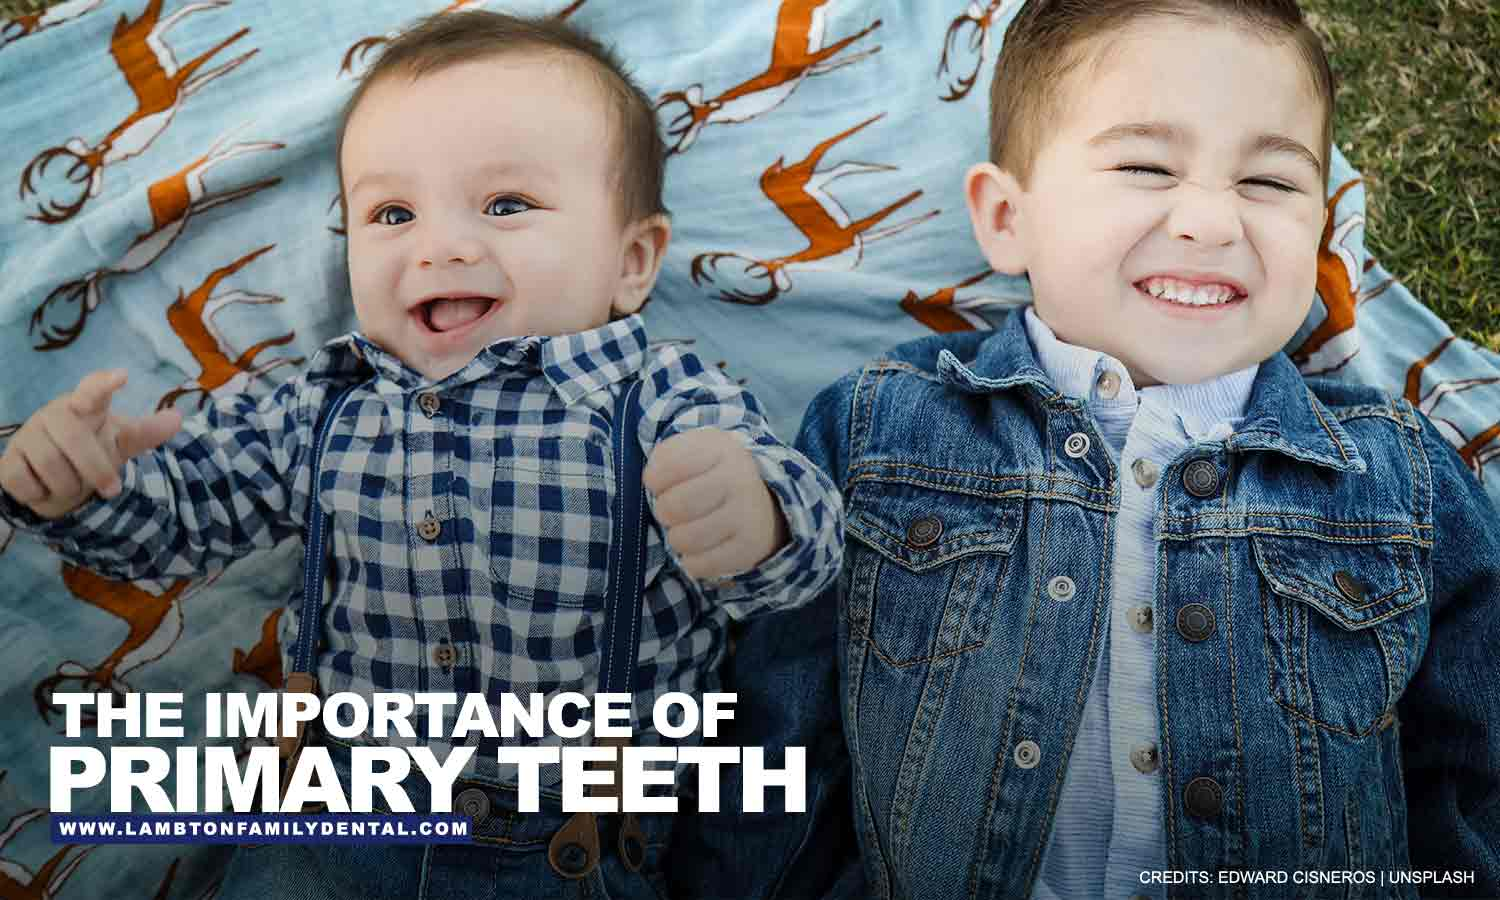 Importance of Primary Teeth